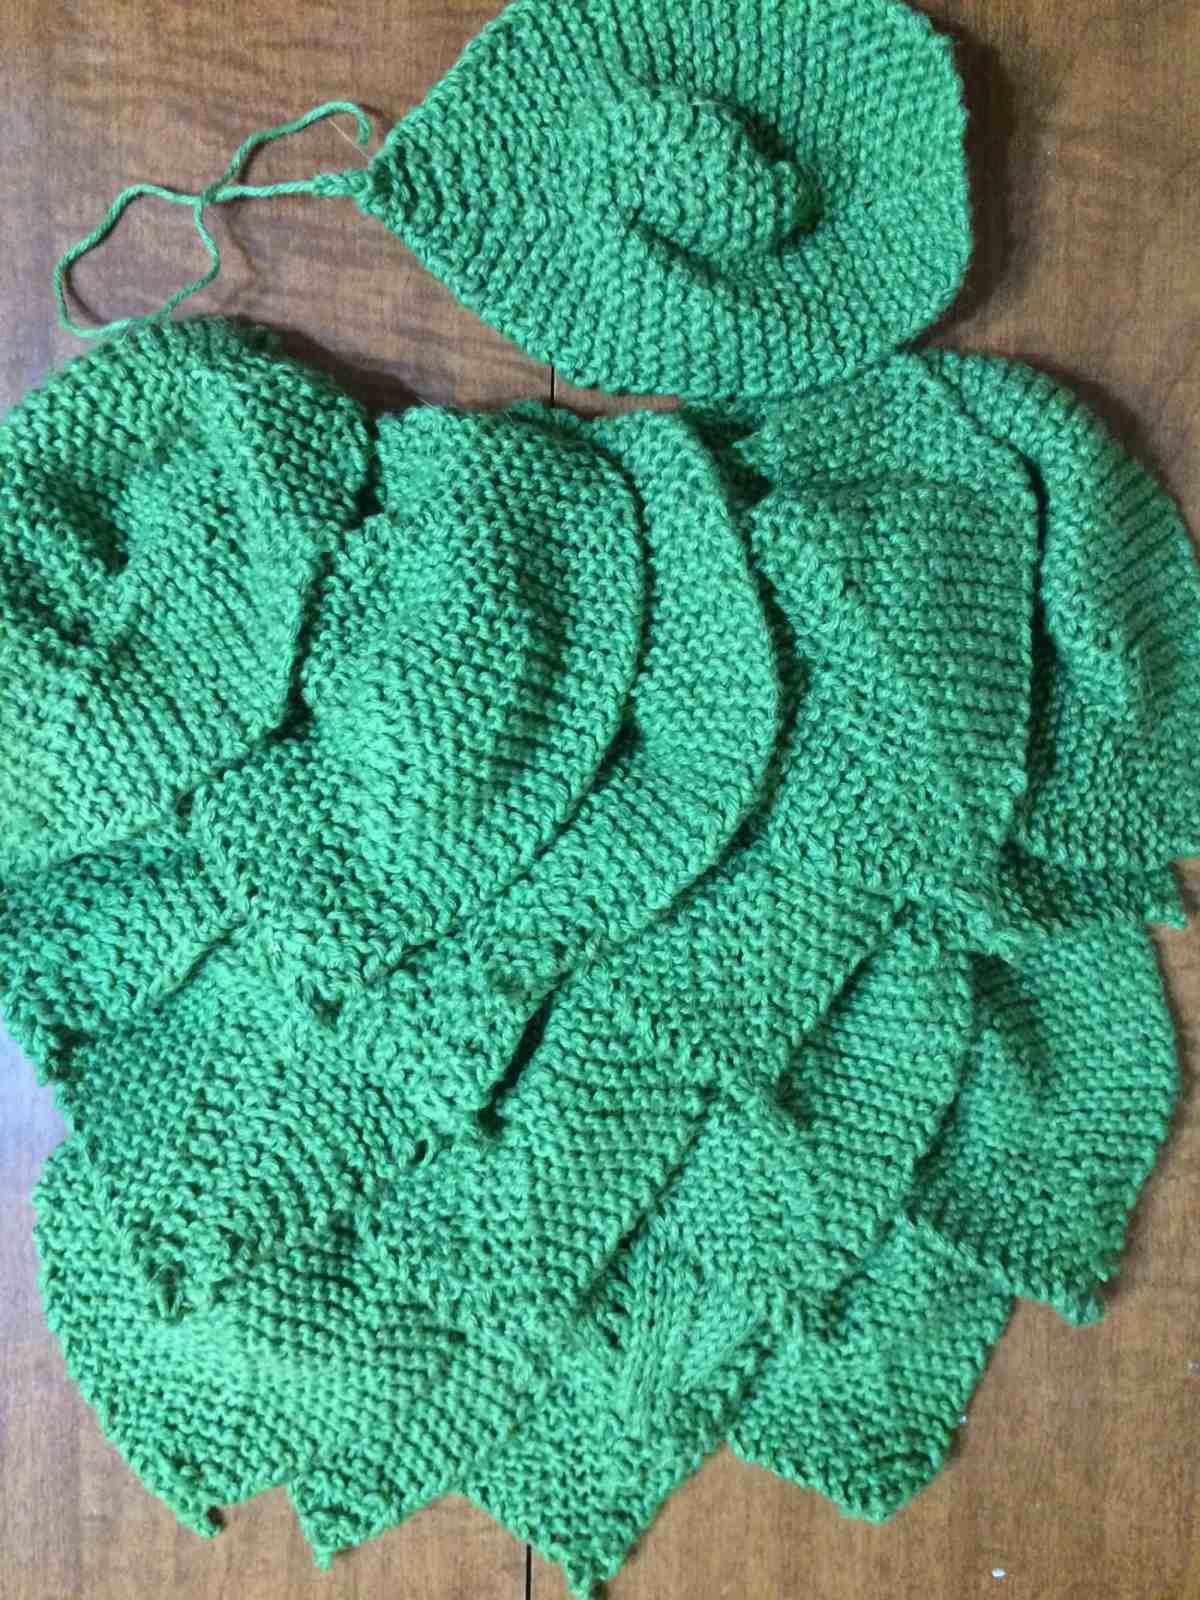 WIP Wednesday: March 25, 2015